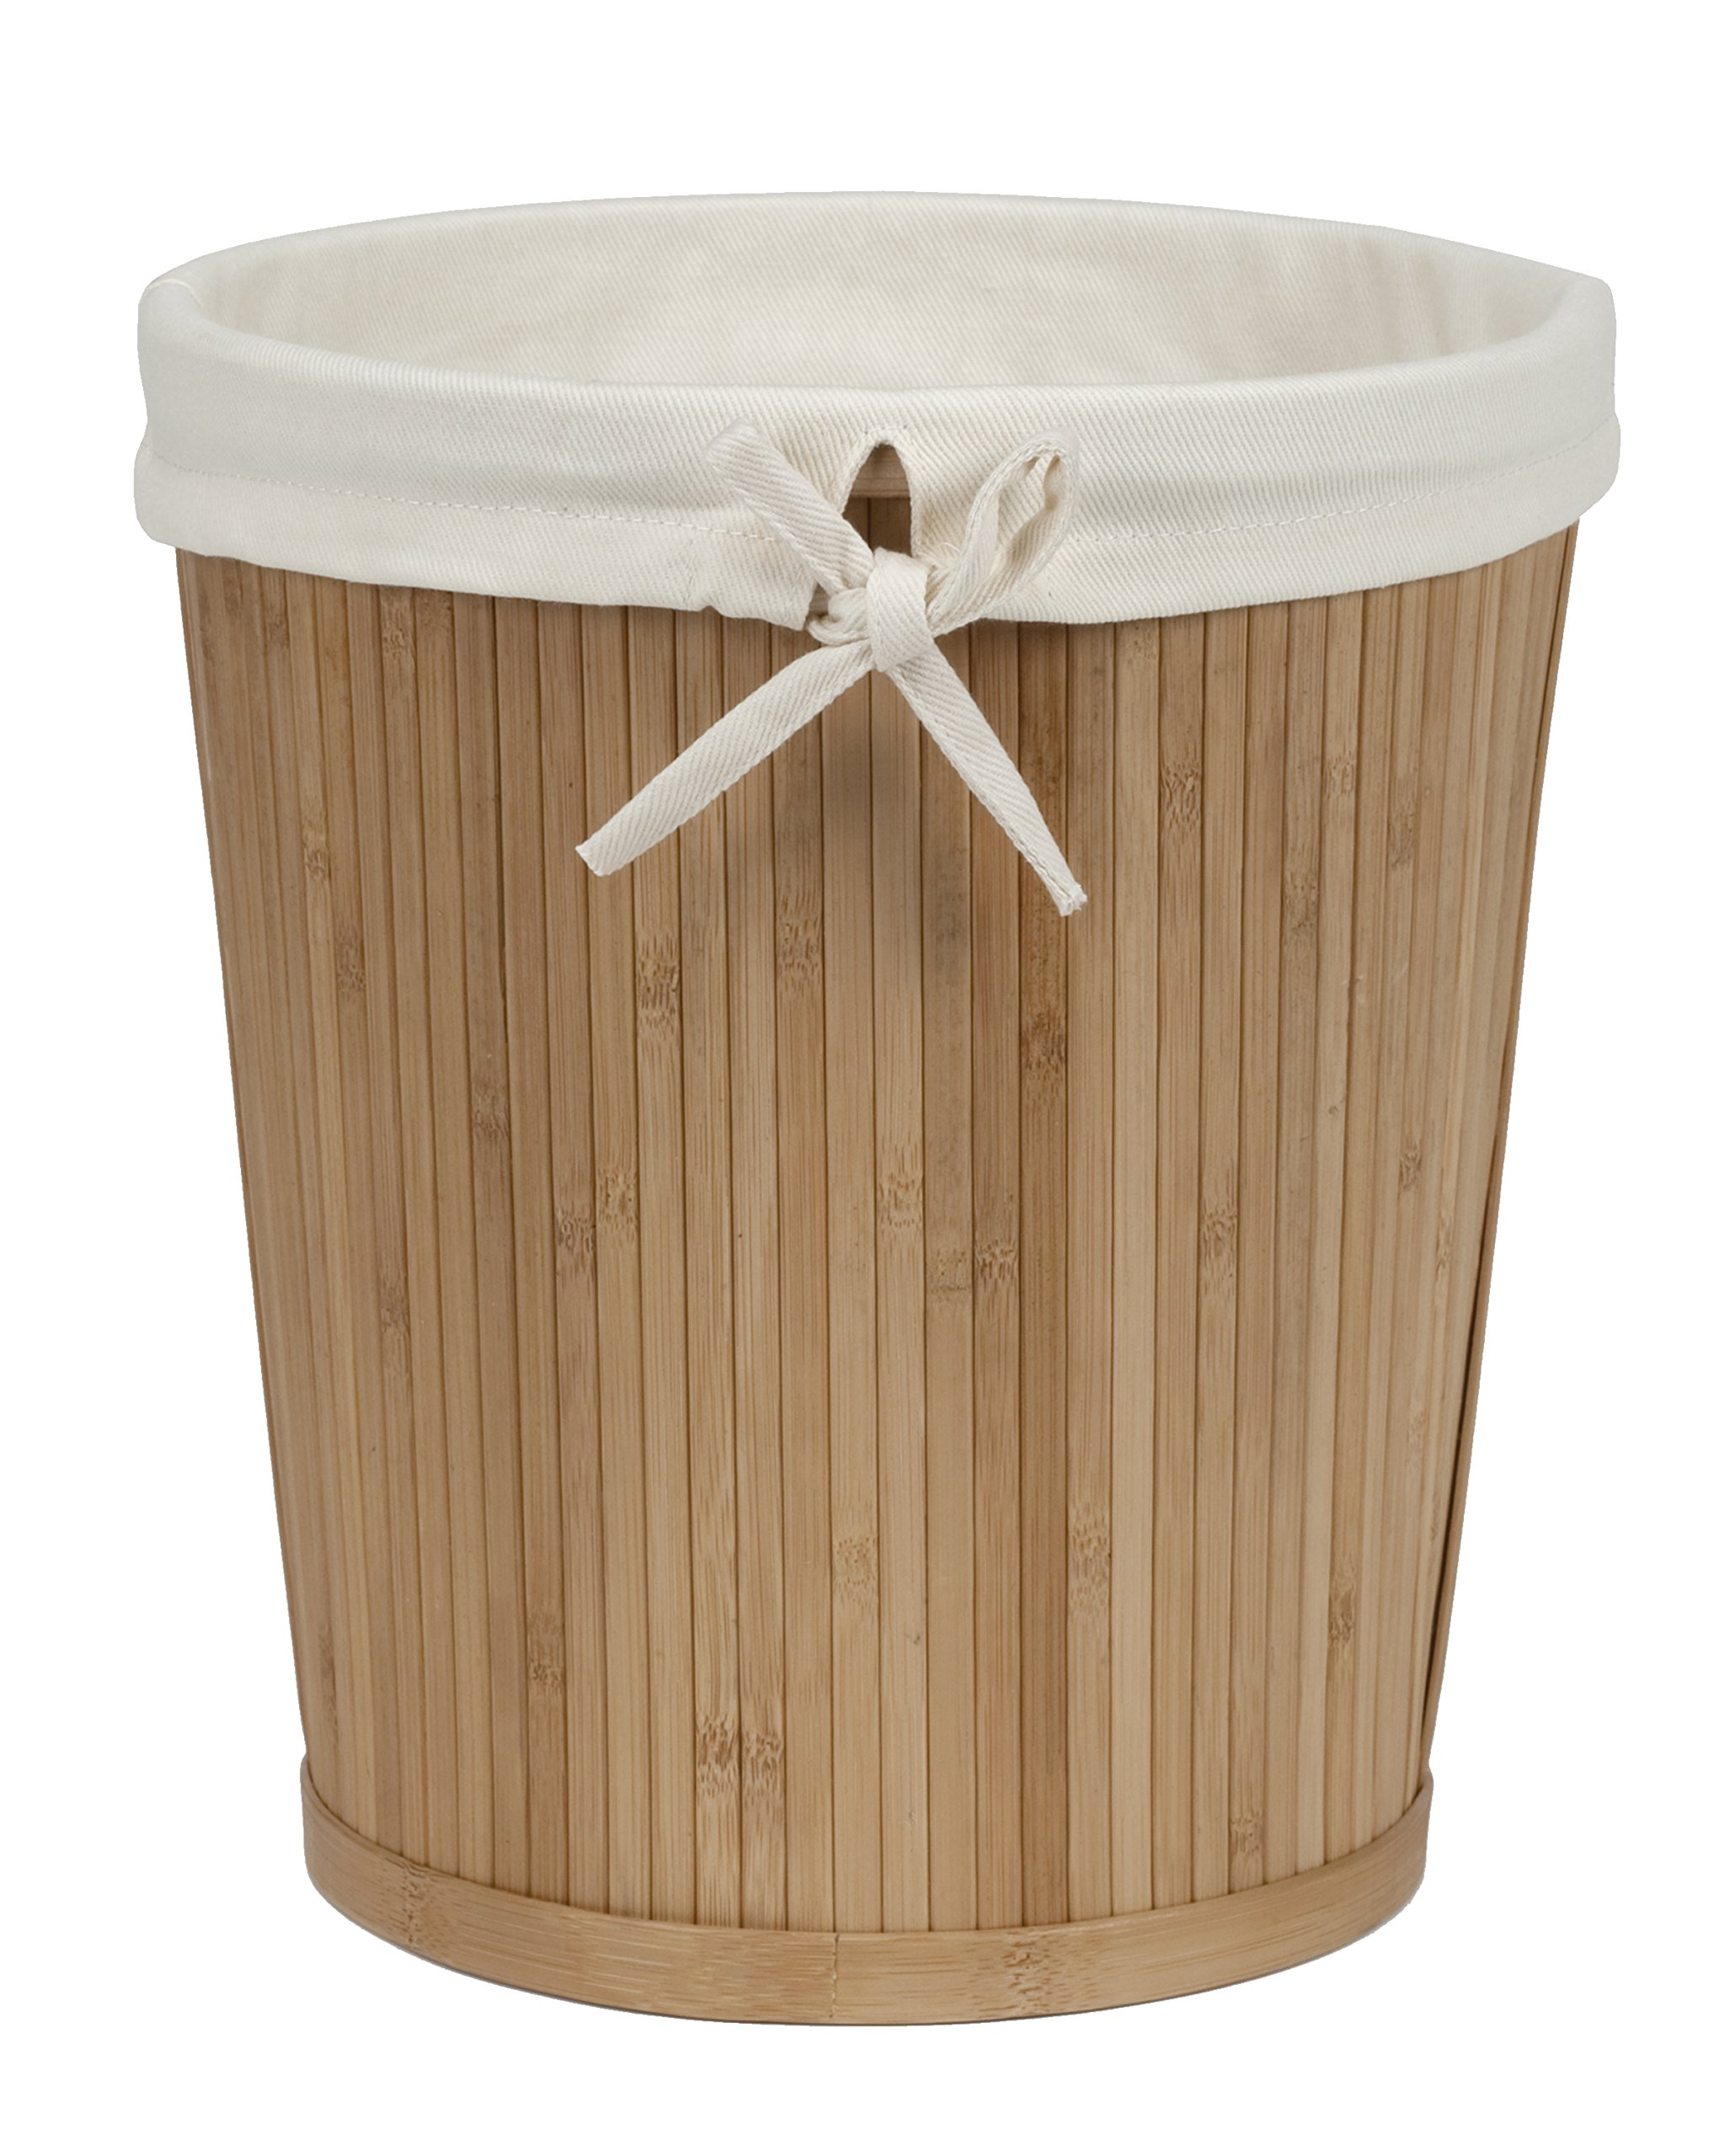 Creative Bath Products Eco Styles Collection Round Waste Basket, Bamboo